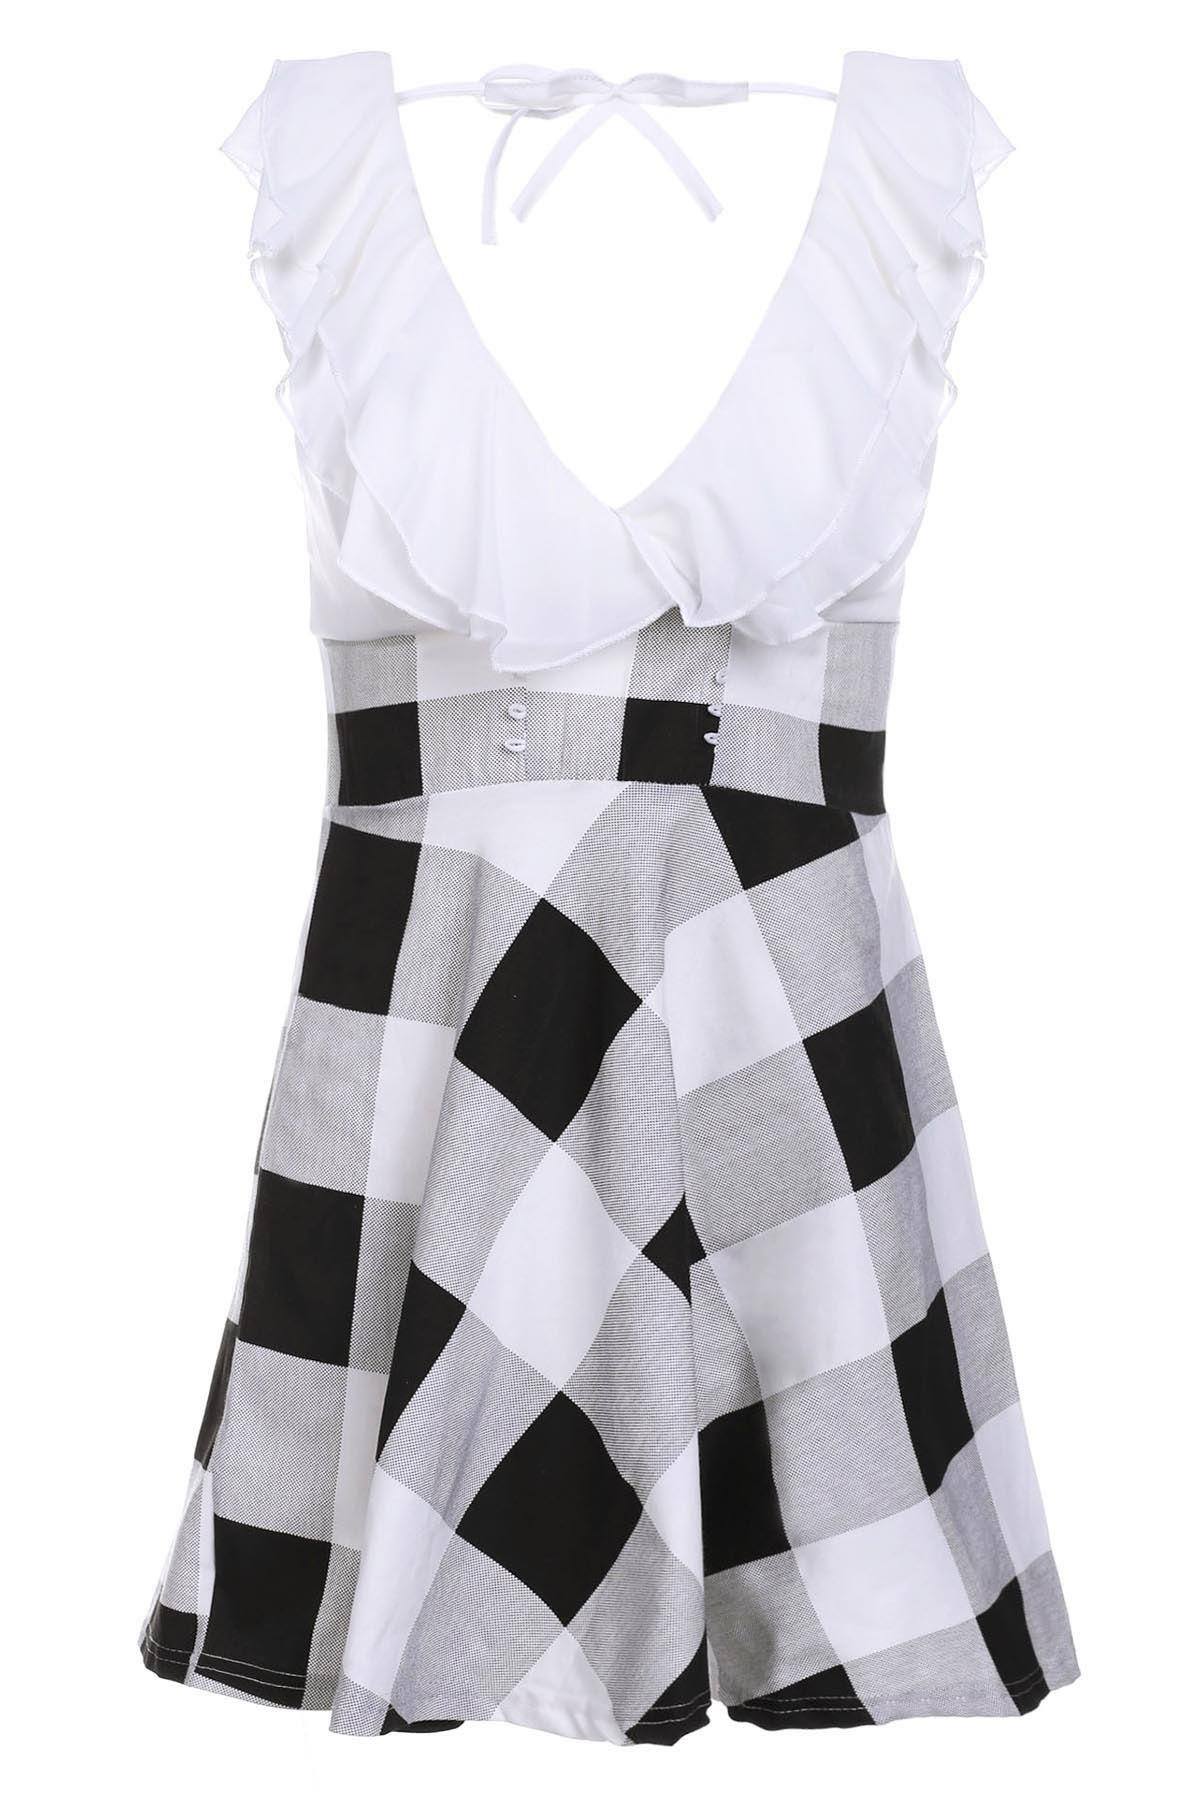 Checked Sweet V-Neck Lace-Up Selvedge Design Women's Dress - WHITE ONE SIZE